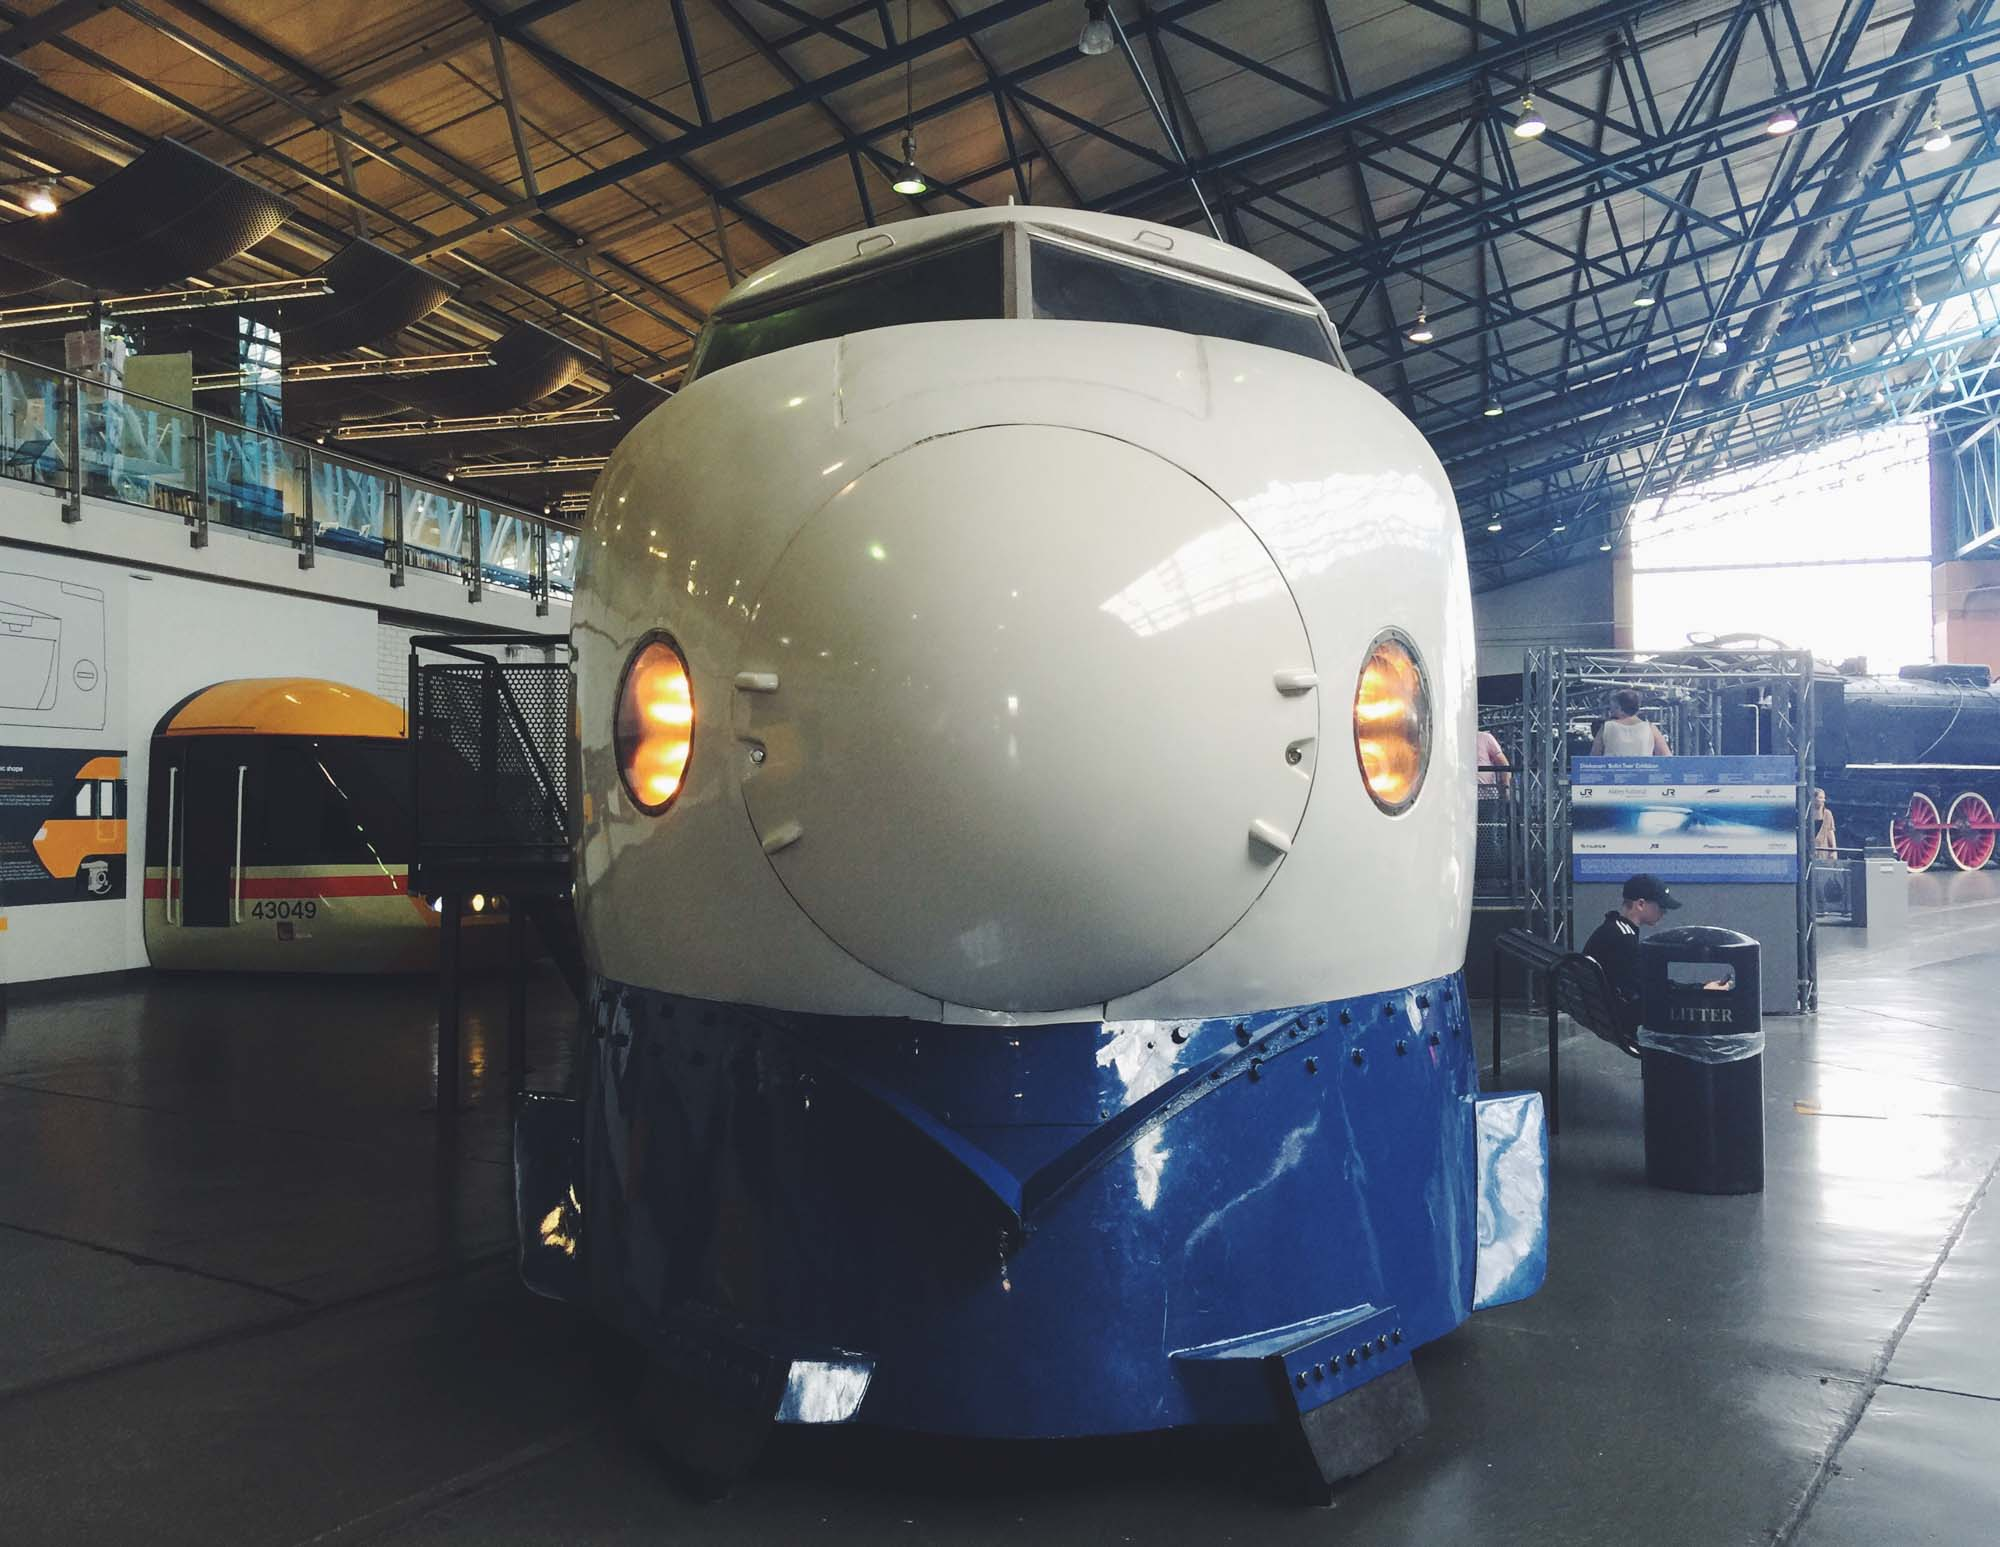 Best things to do in York - National Railway Museum